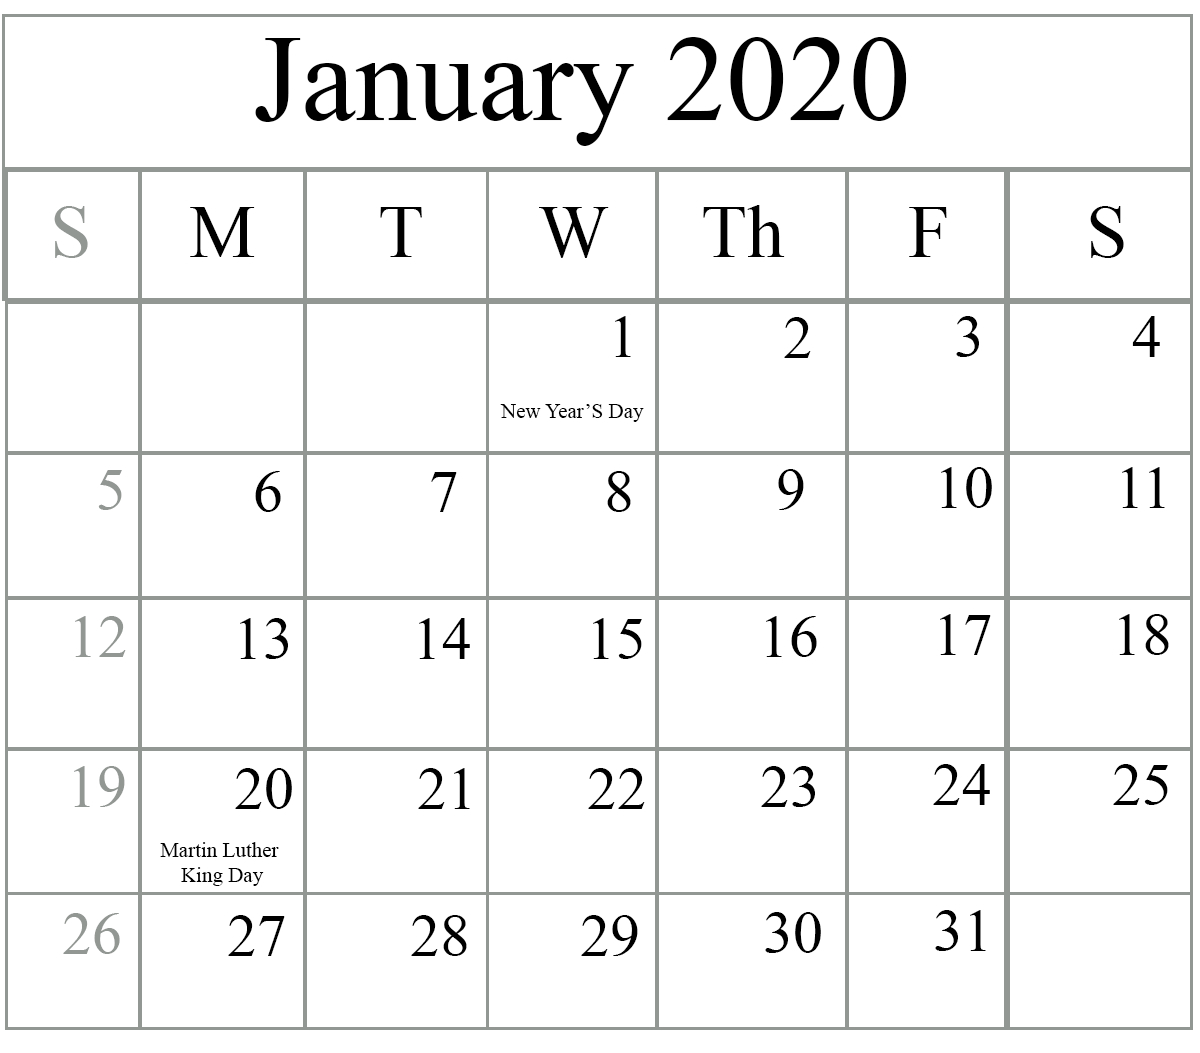 Free Blank January 2020 Calendar Printable In Pdf, Word, Excel Calendars That You Can Fill In